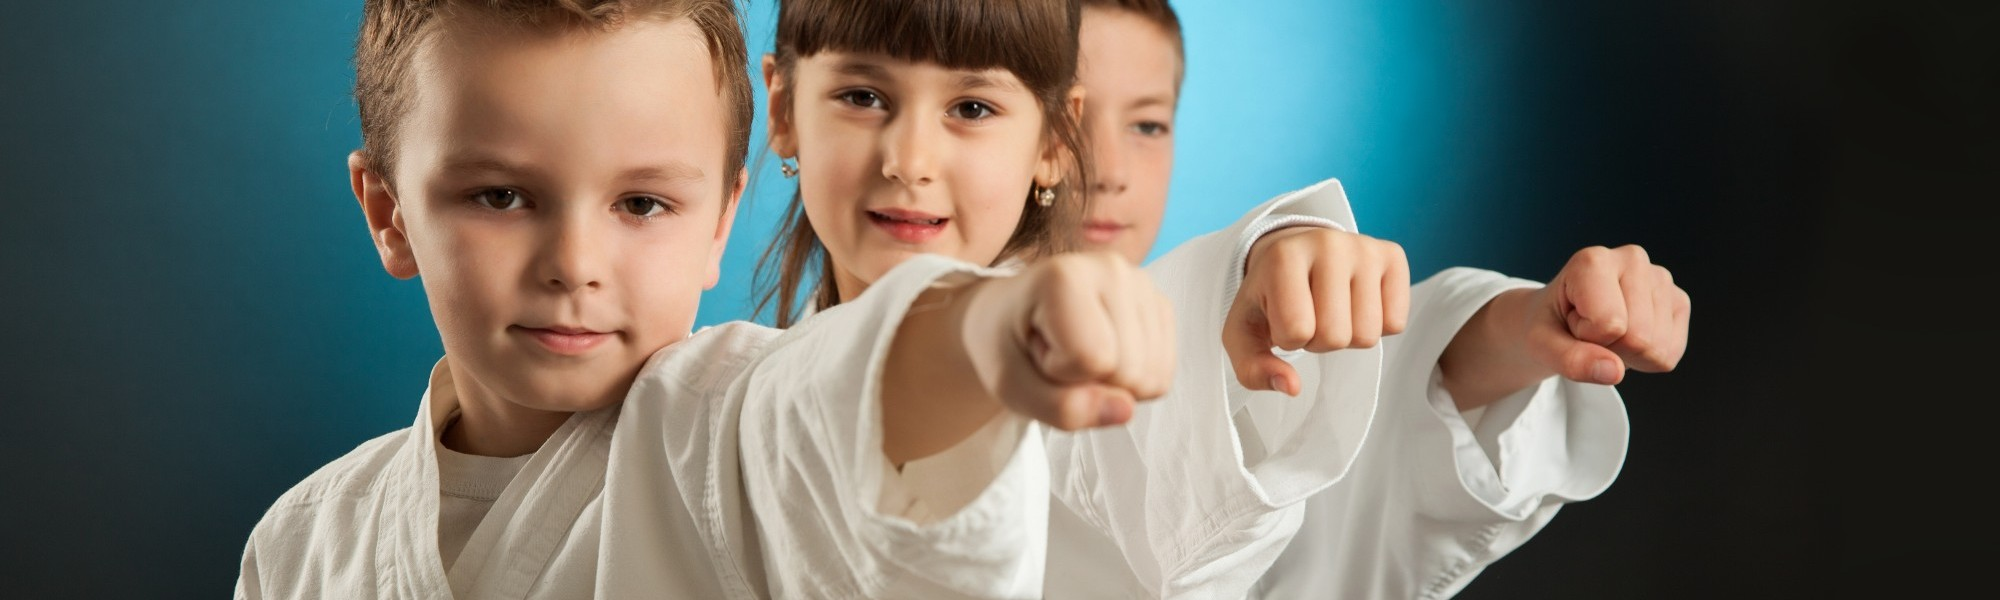 Children Practicing Karate